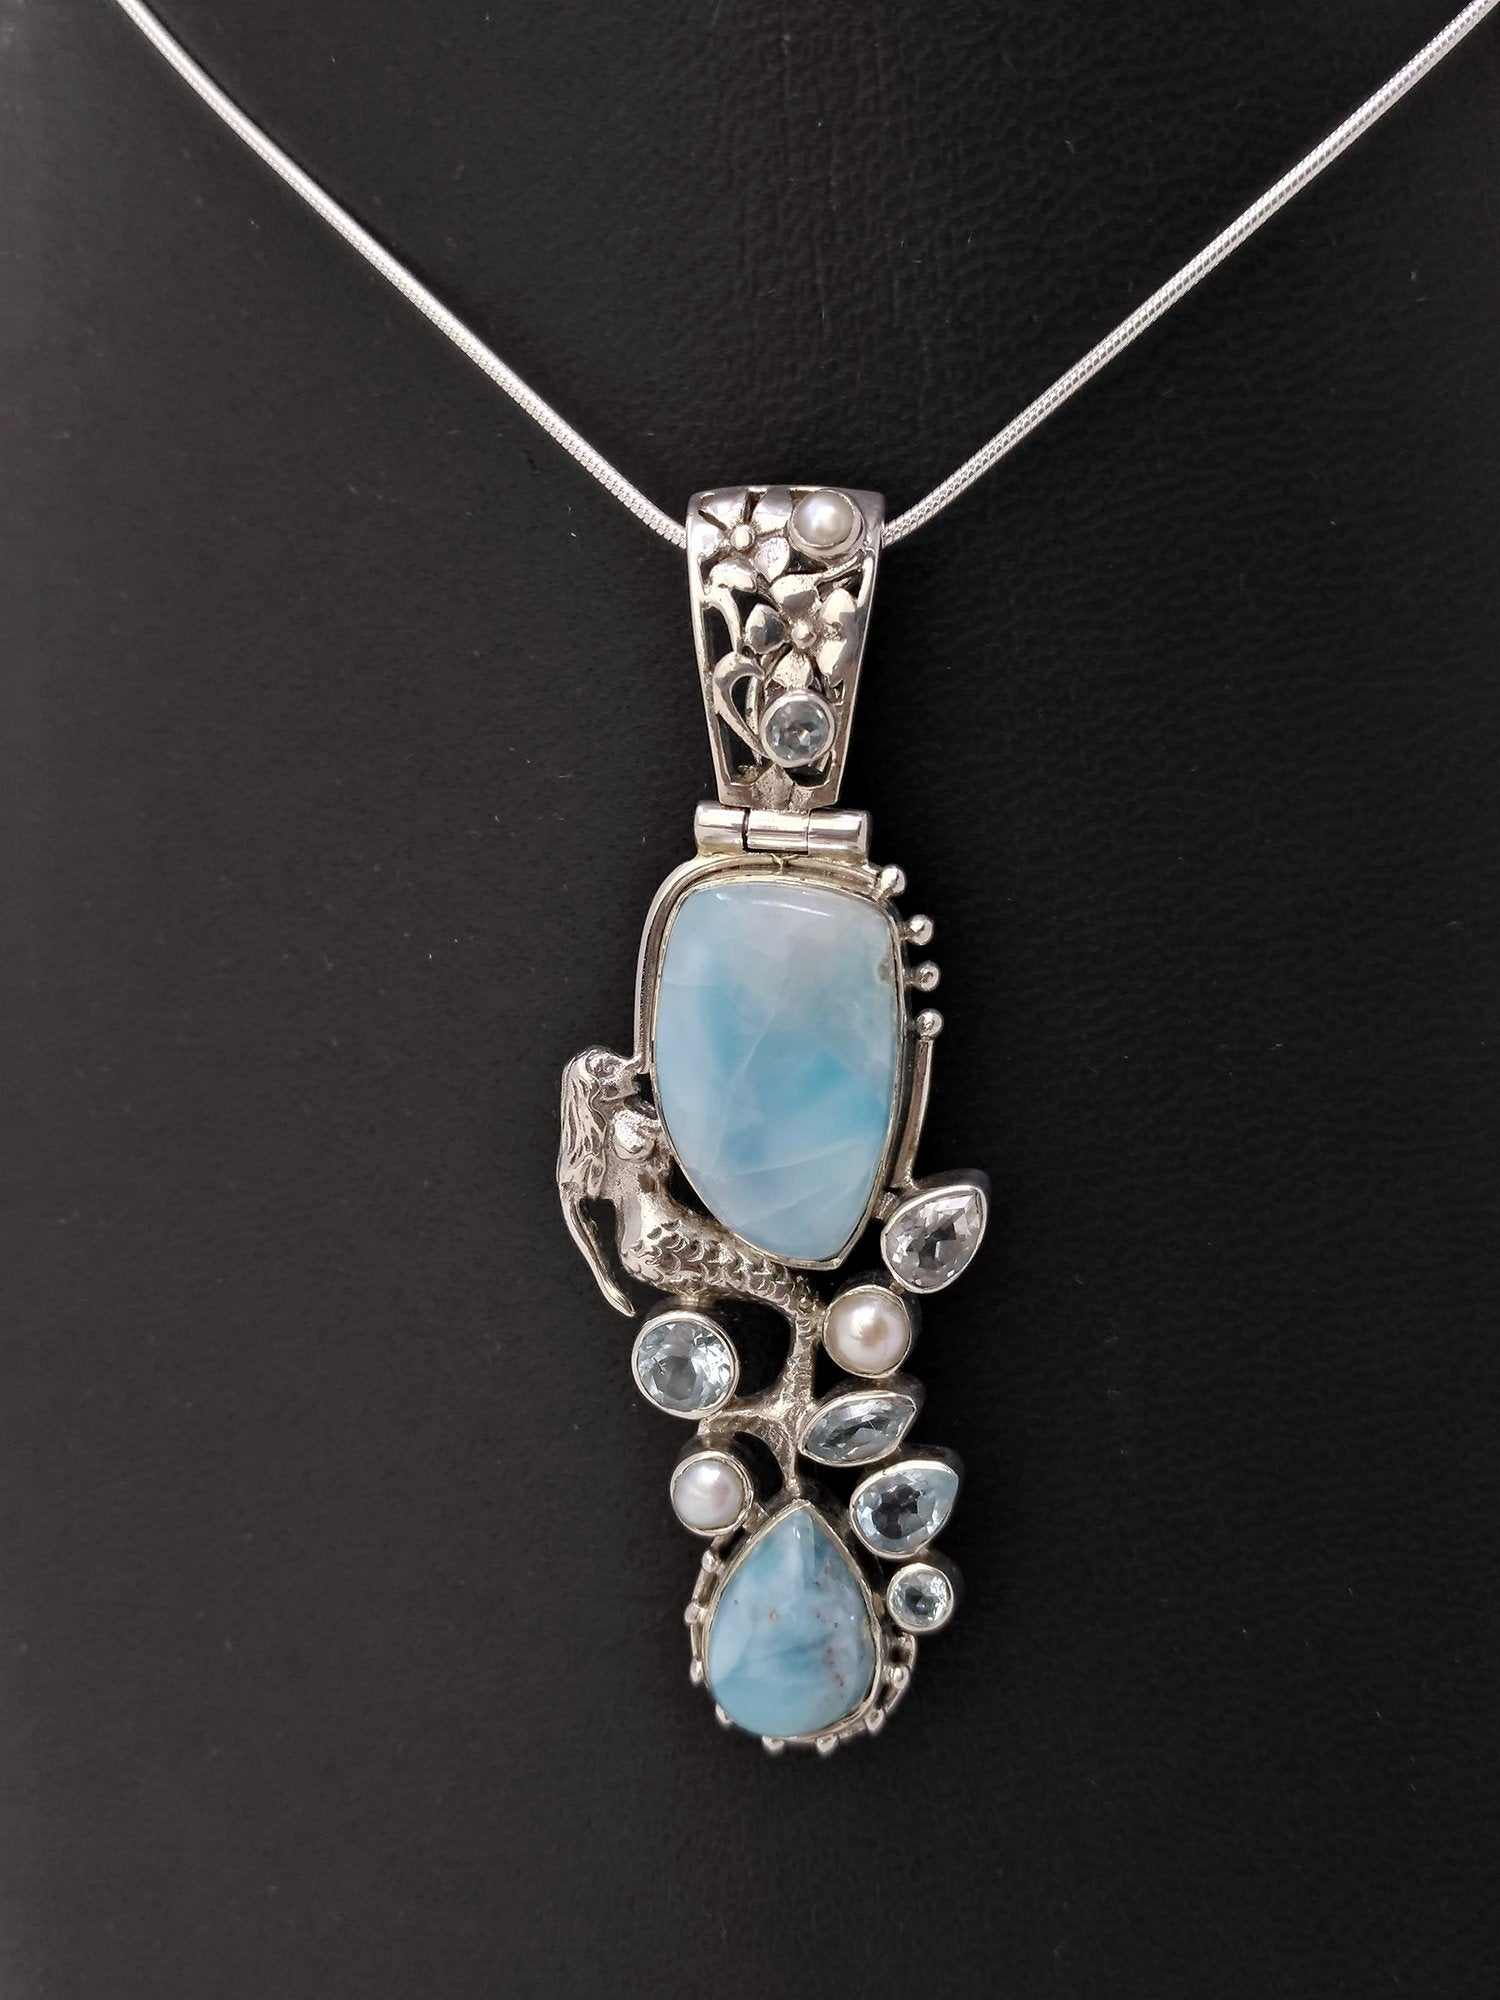 Larimar, Blue Topaz & Freshwater Pearl Pendant in Sterling Silver - Unique Multi-Stone Silver Pendant - One of a Kind Jewelry